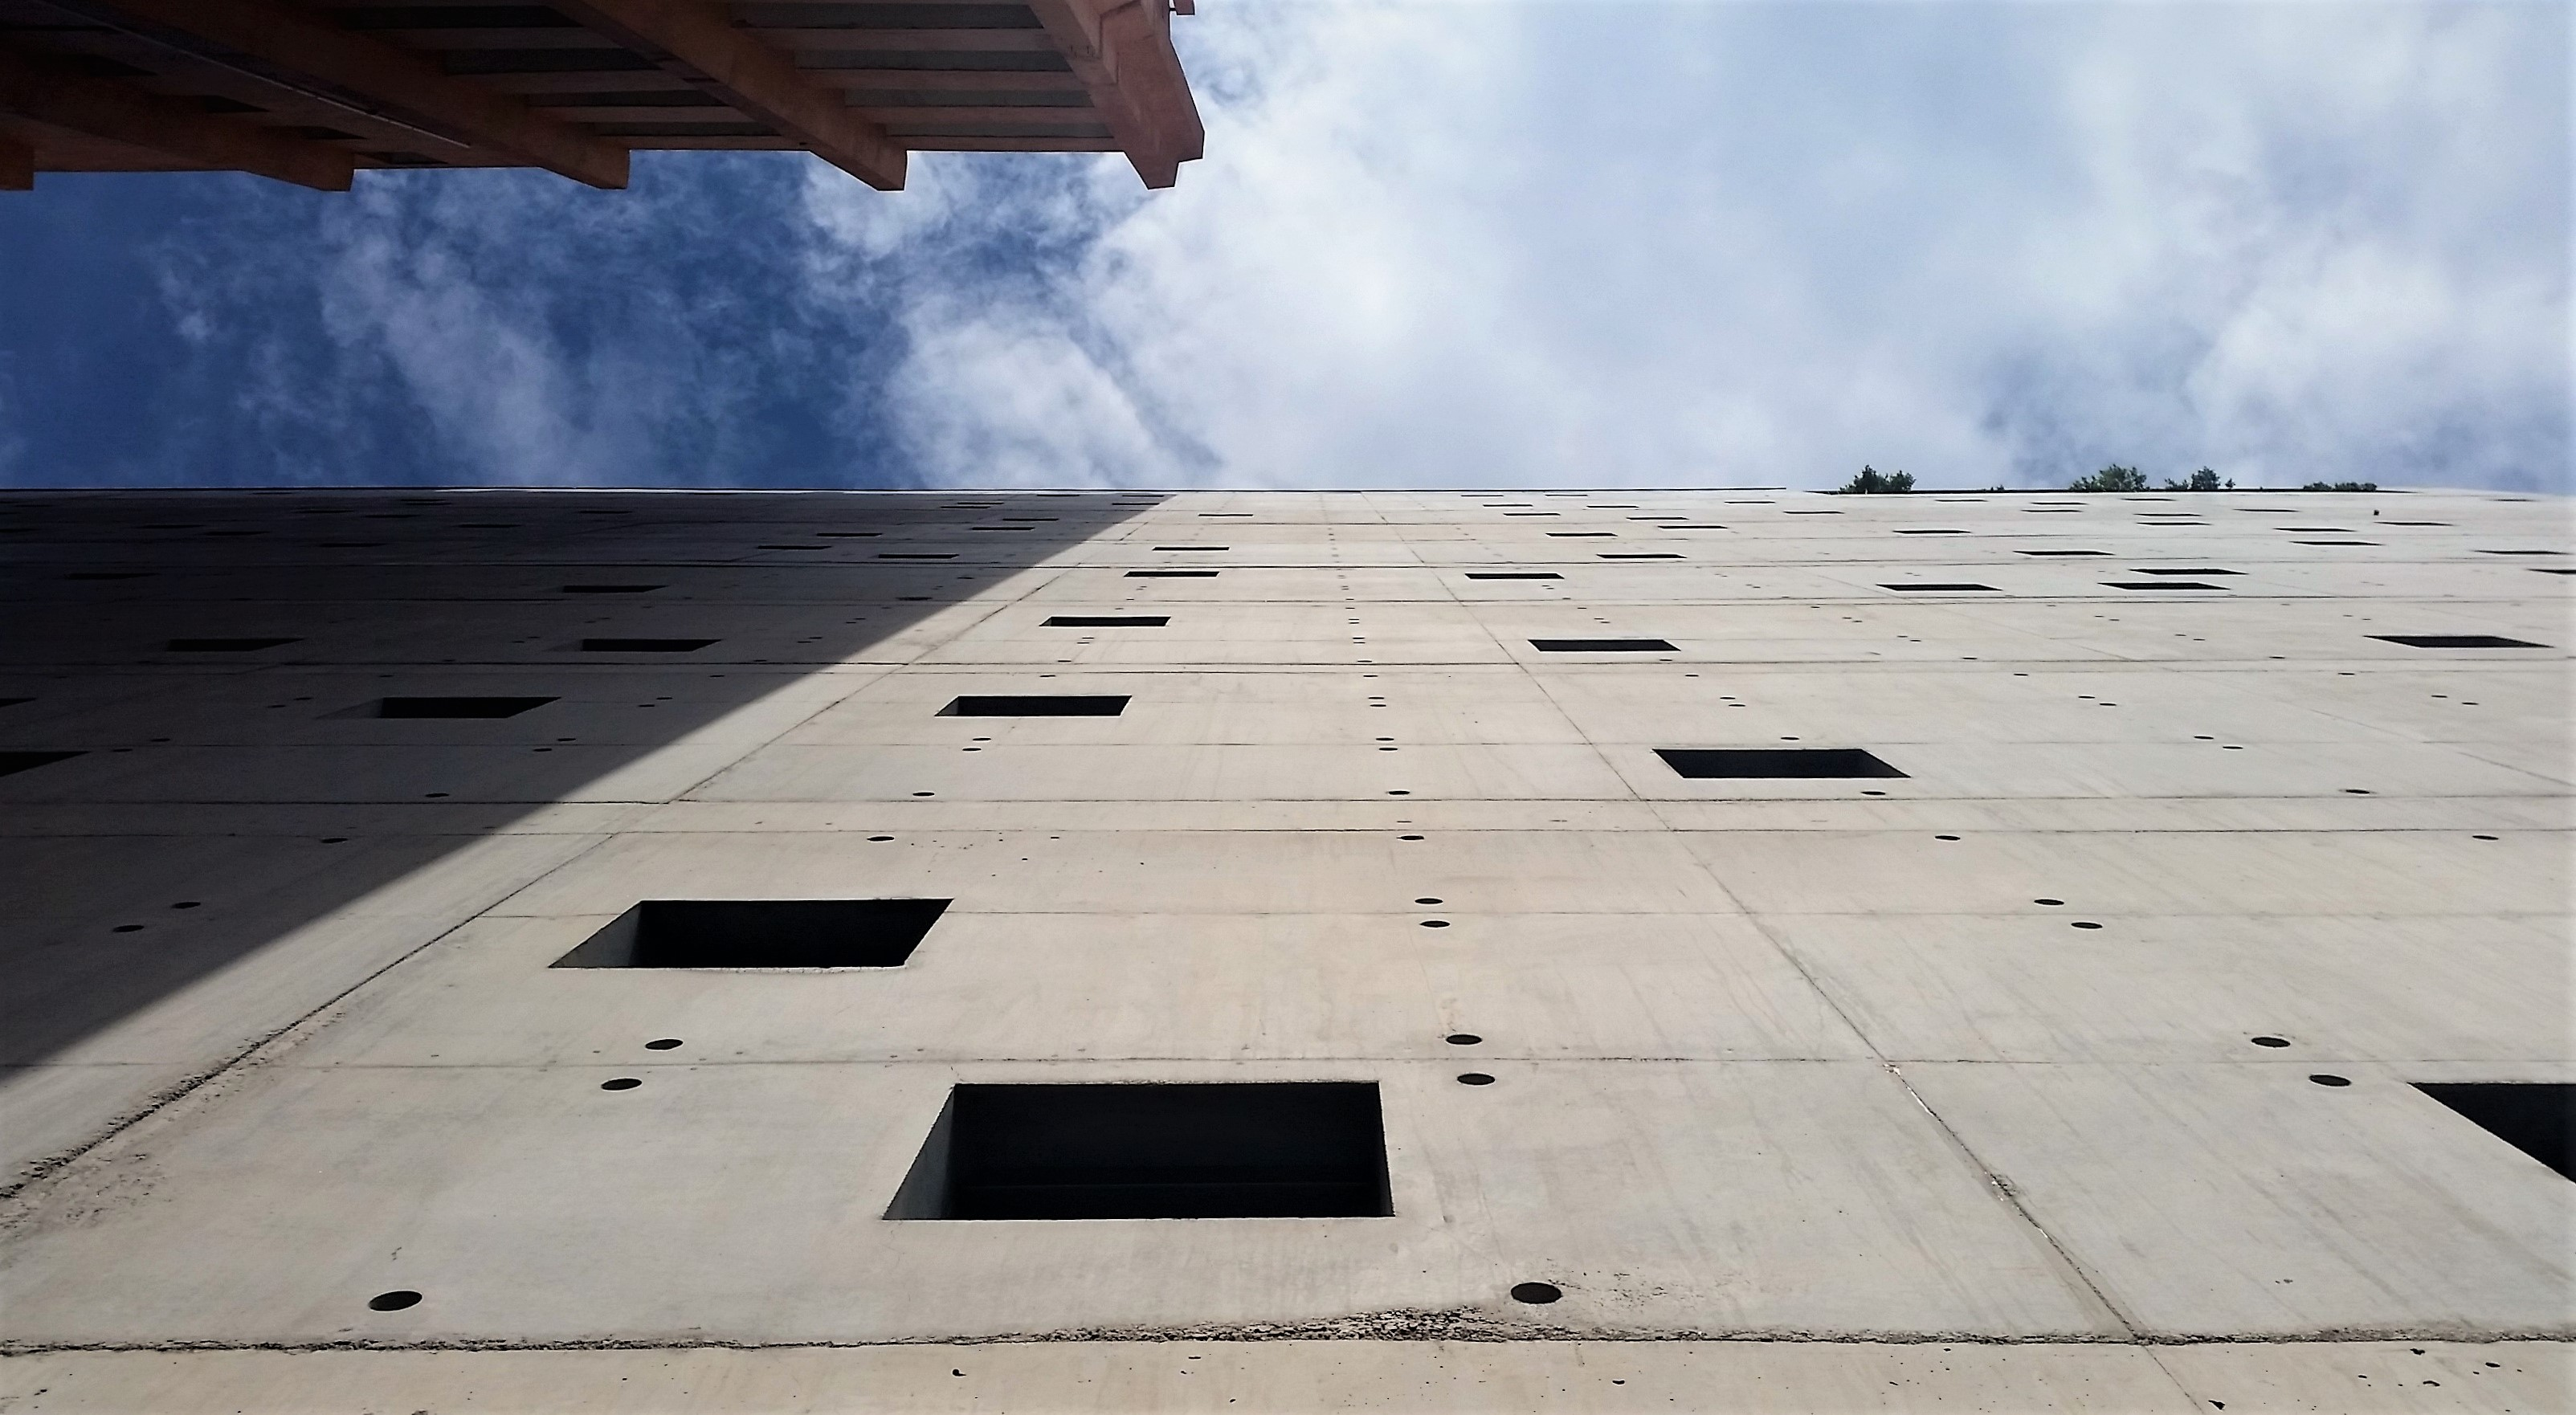 Off-form concrete facade